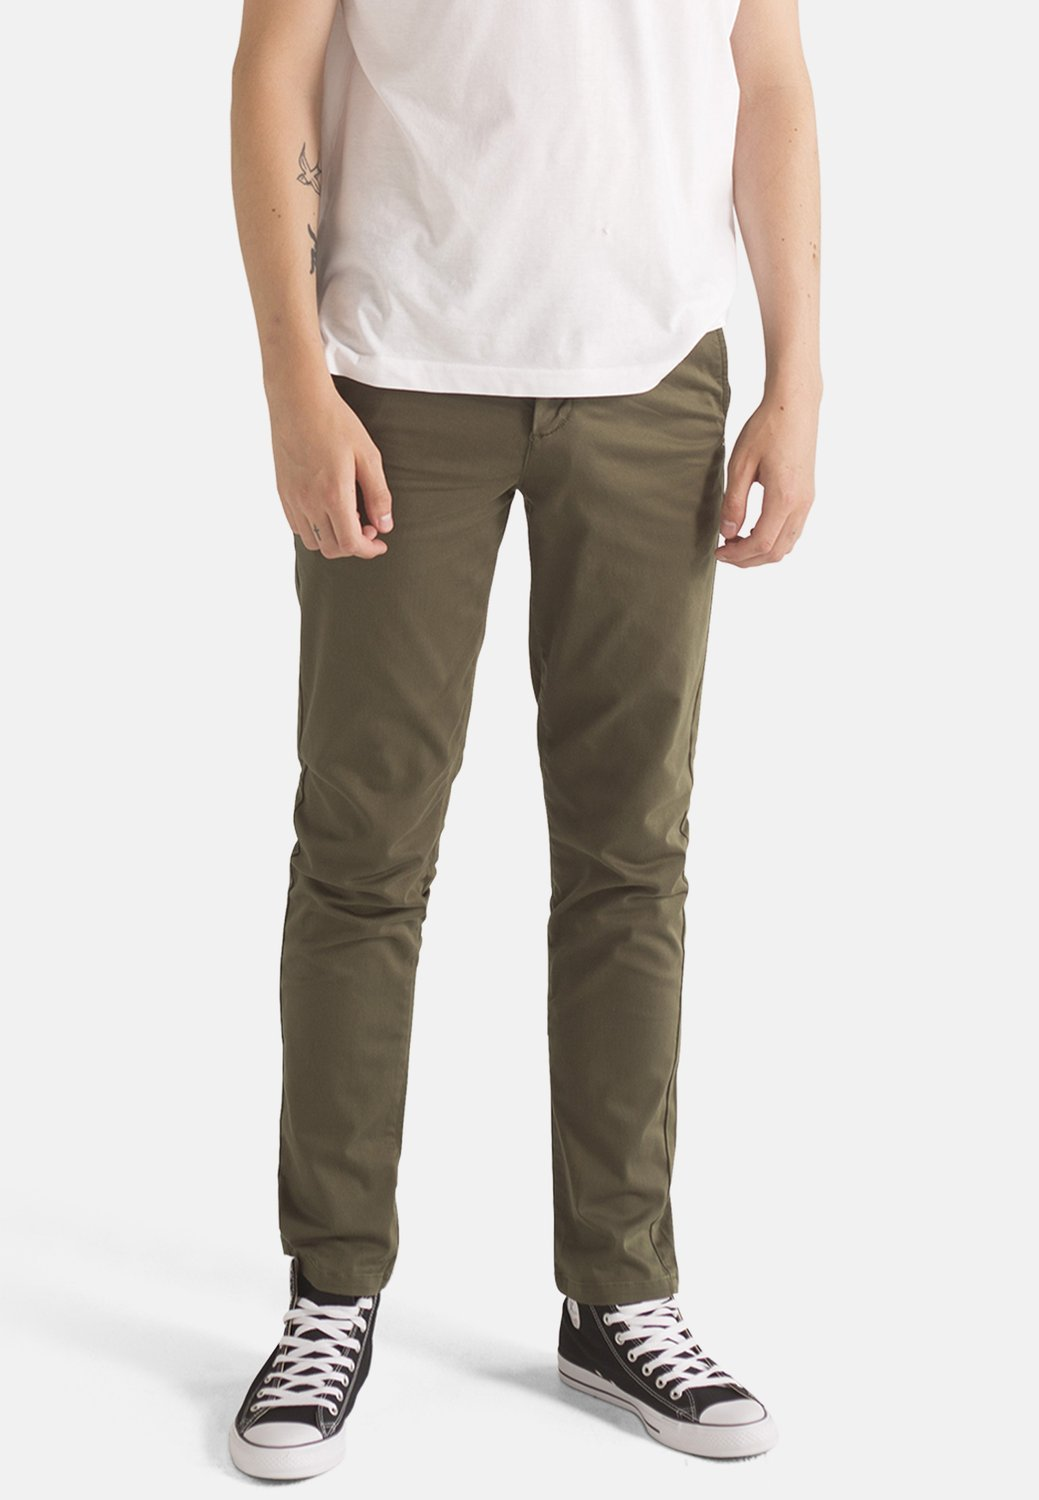 Jeans - Olive Green Organic Cotton Chino